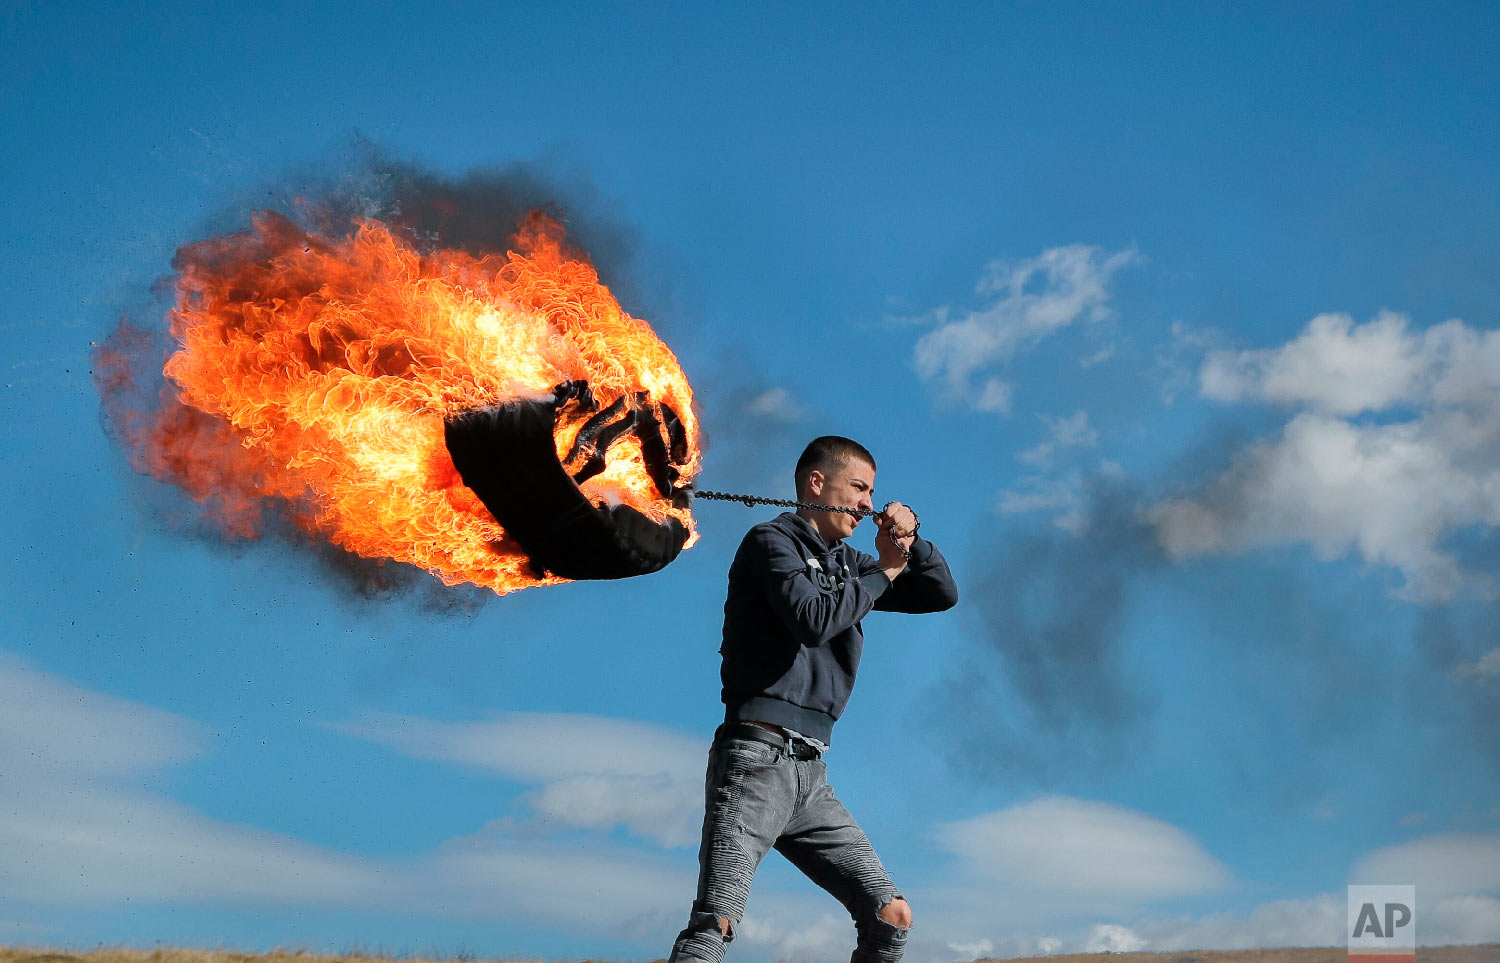 A young man spins a burning tire on a metal chain during a ritual marking the upcoming Clean Monday, the beginning of the Great Lent, 40 days ahead of Orthodox Easter, on the hills surrounding the village of Poplaca, in central Romania's Transylvania region, Sunday, March 10, 2019. (AP Photo/Vadim Ghirda)